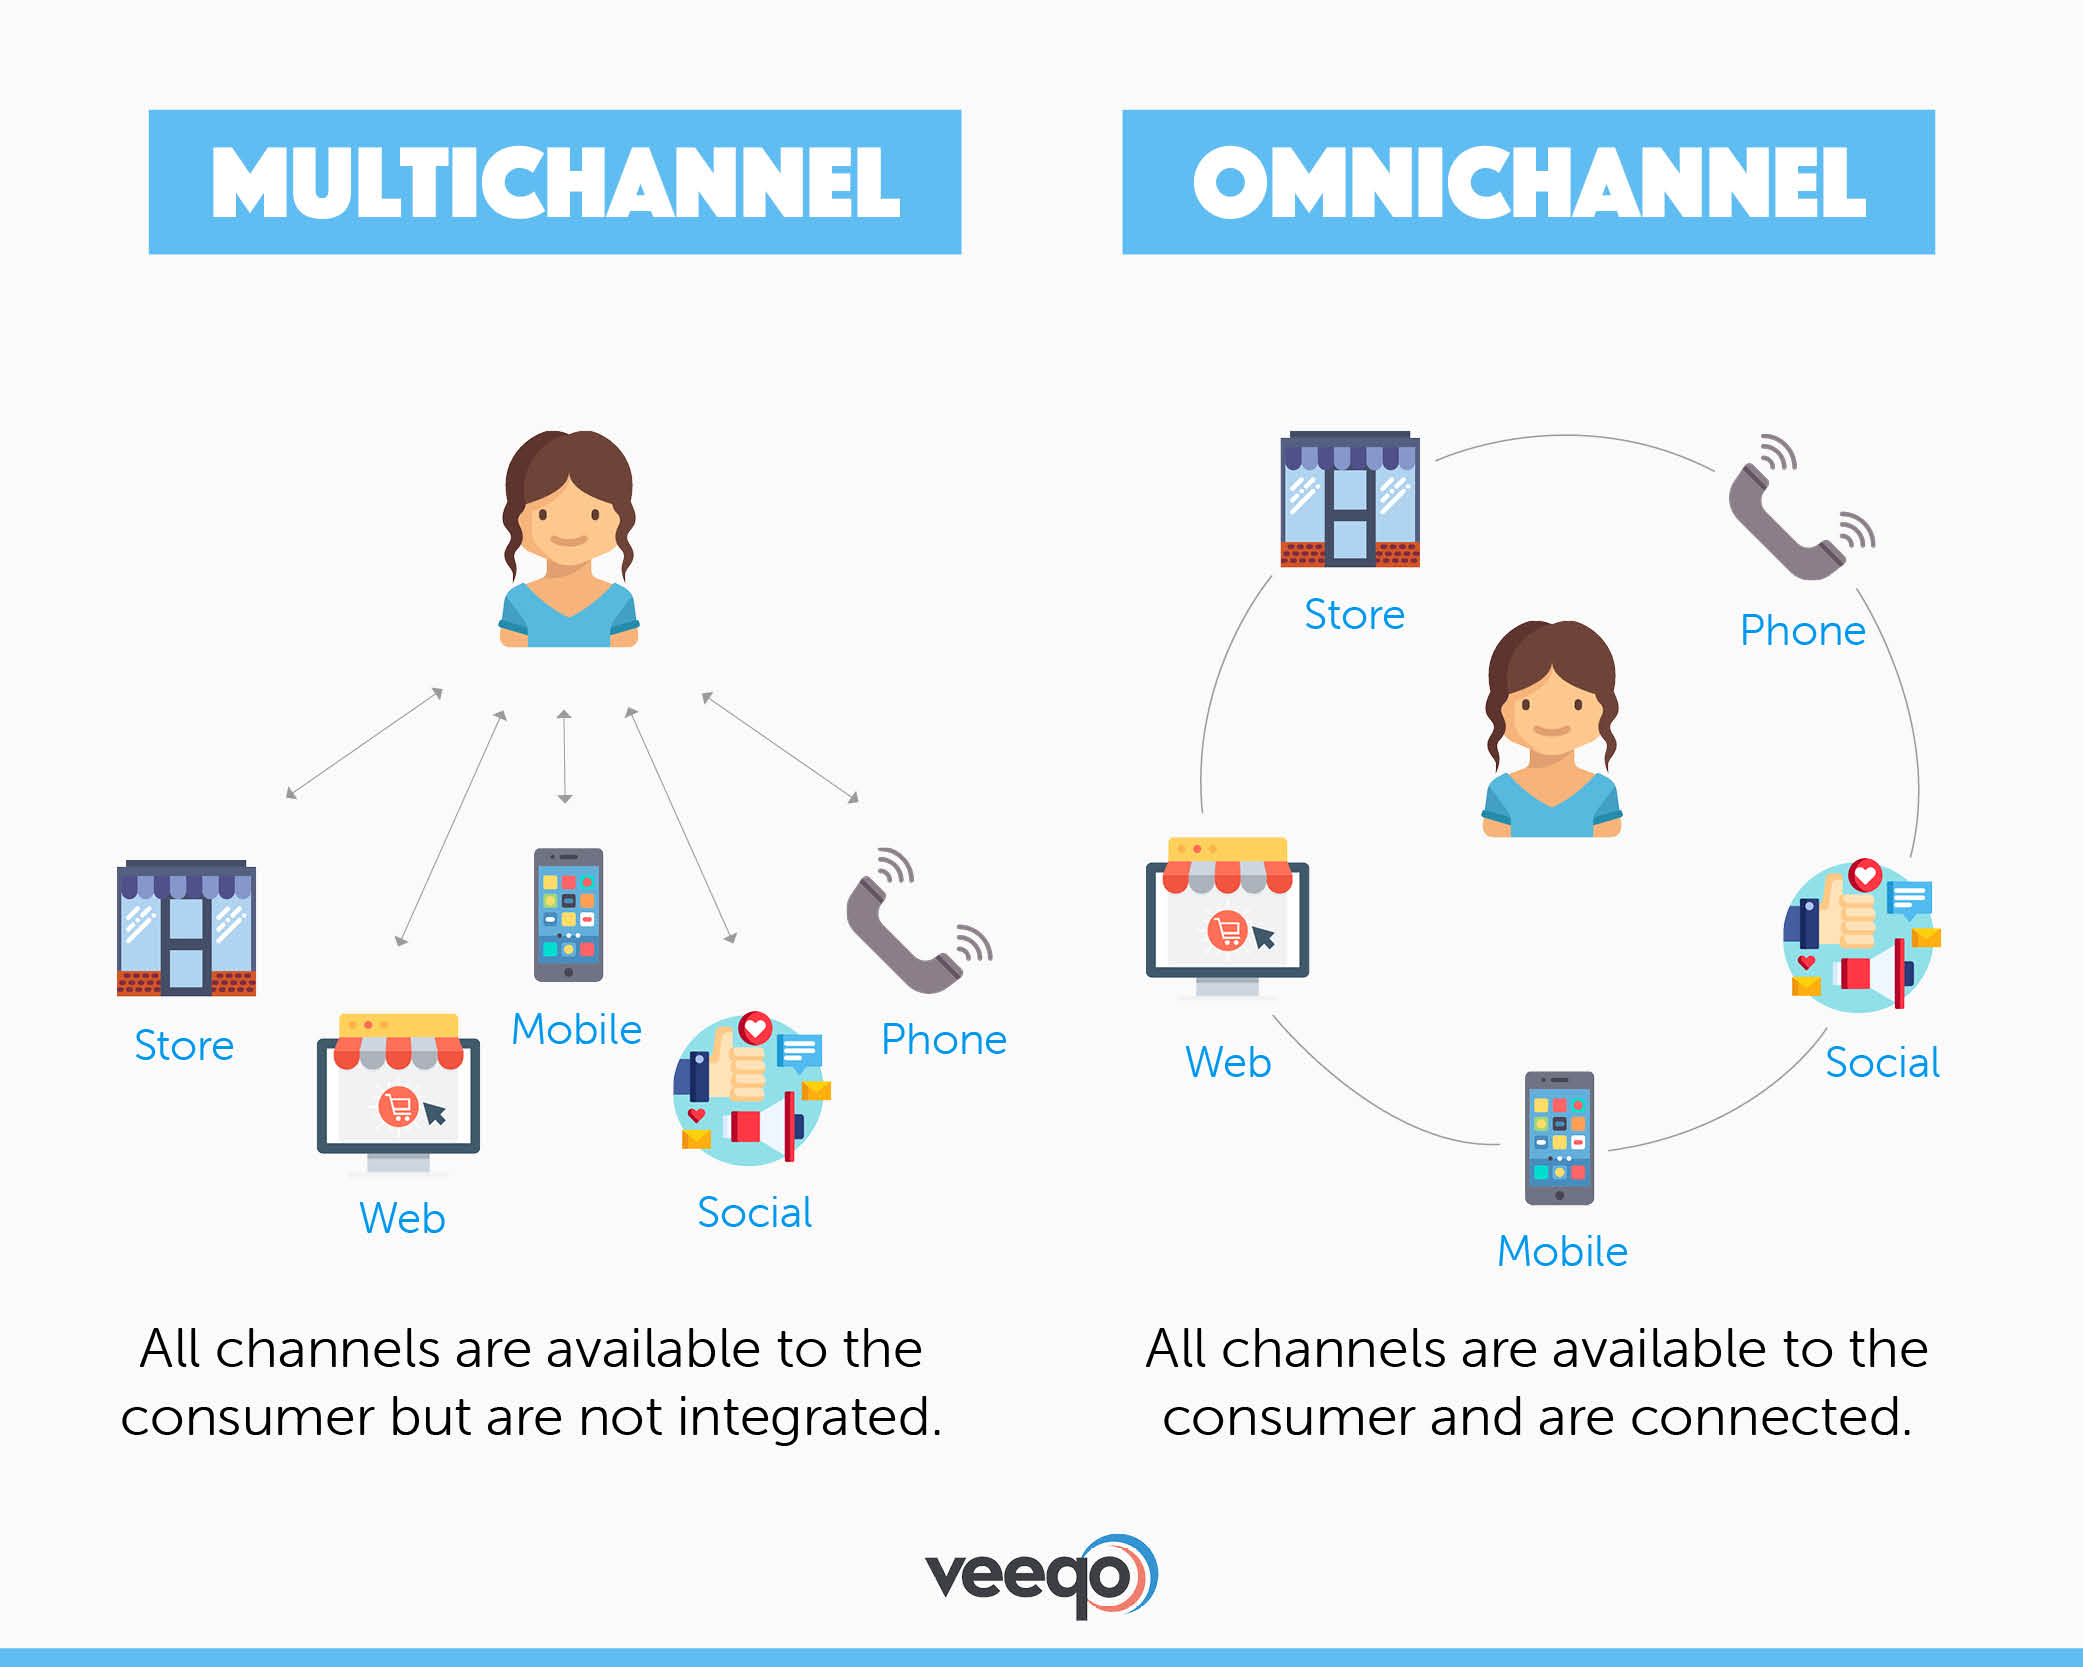 A visual representation of multichannel versus omnichannel customer service courtesy of Veeqo.